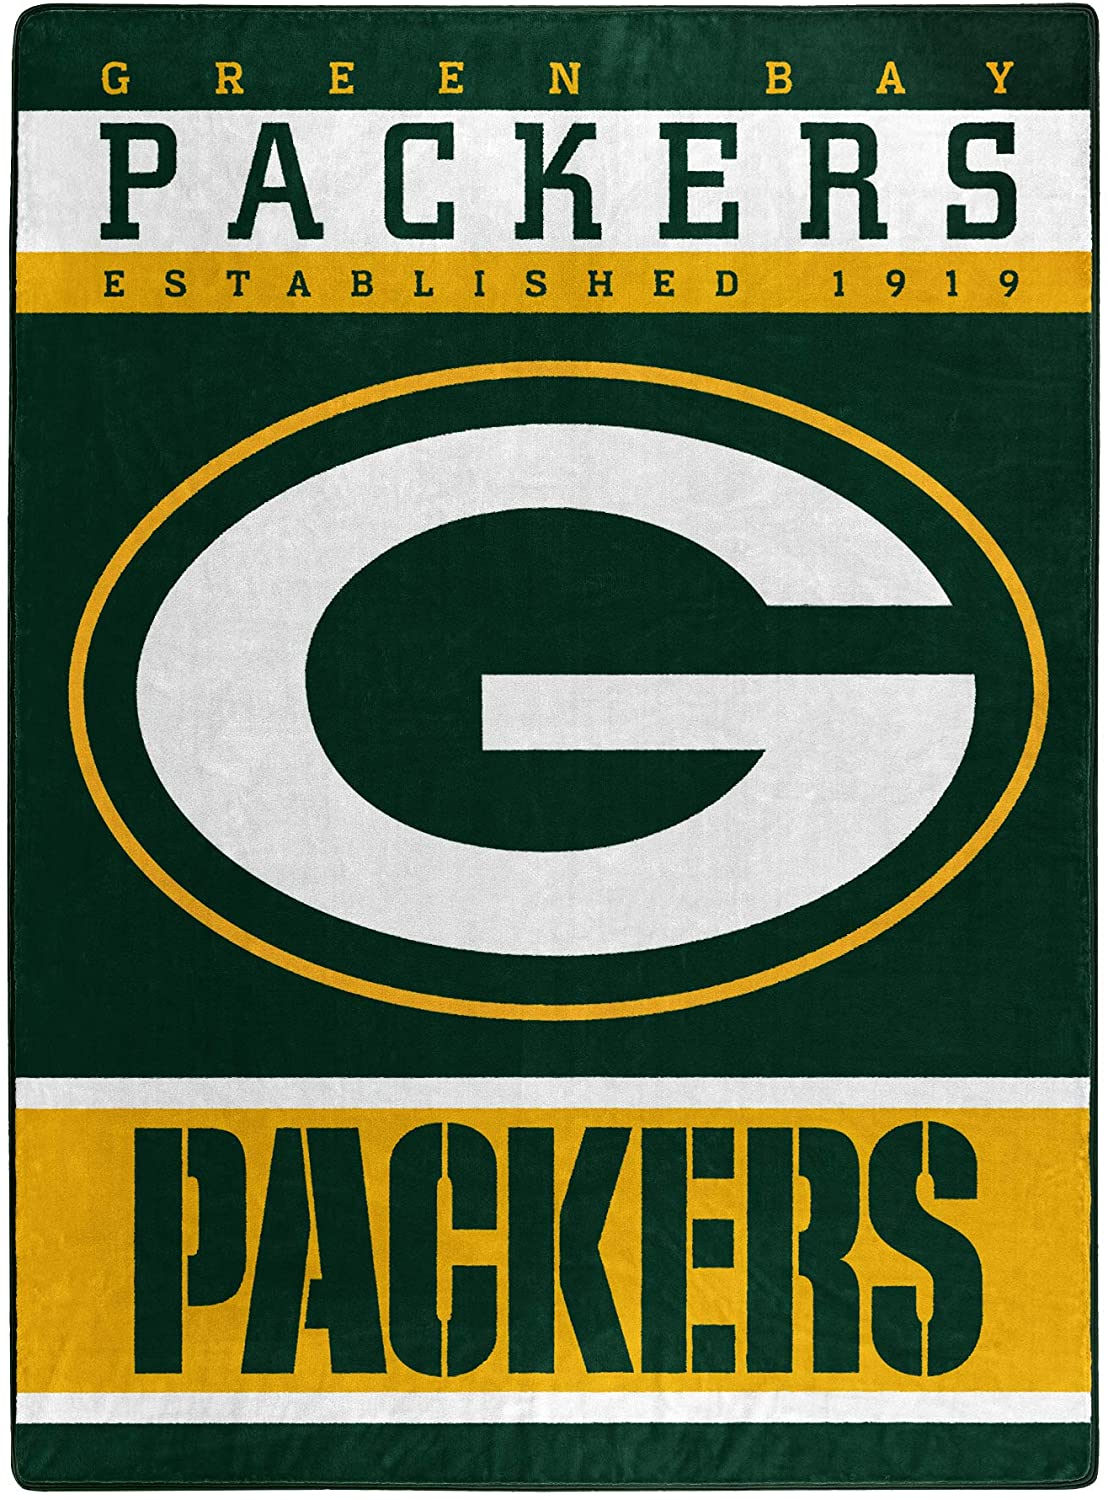 The Officially Licensed Nfl Throw Green Bay Packers Fleece Blanket